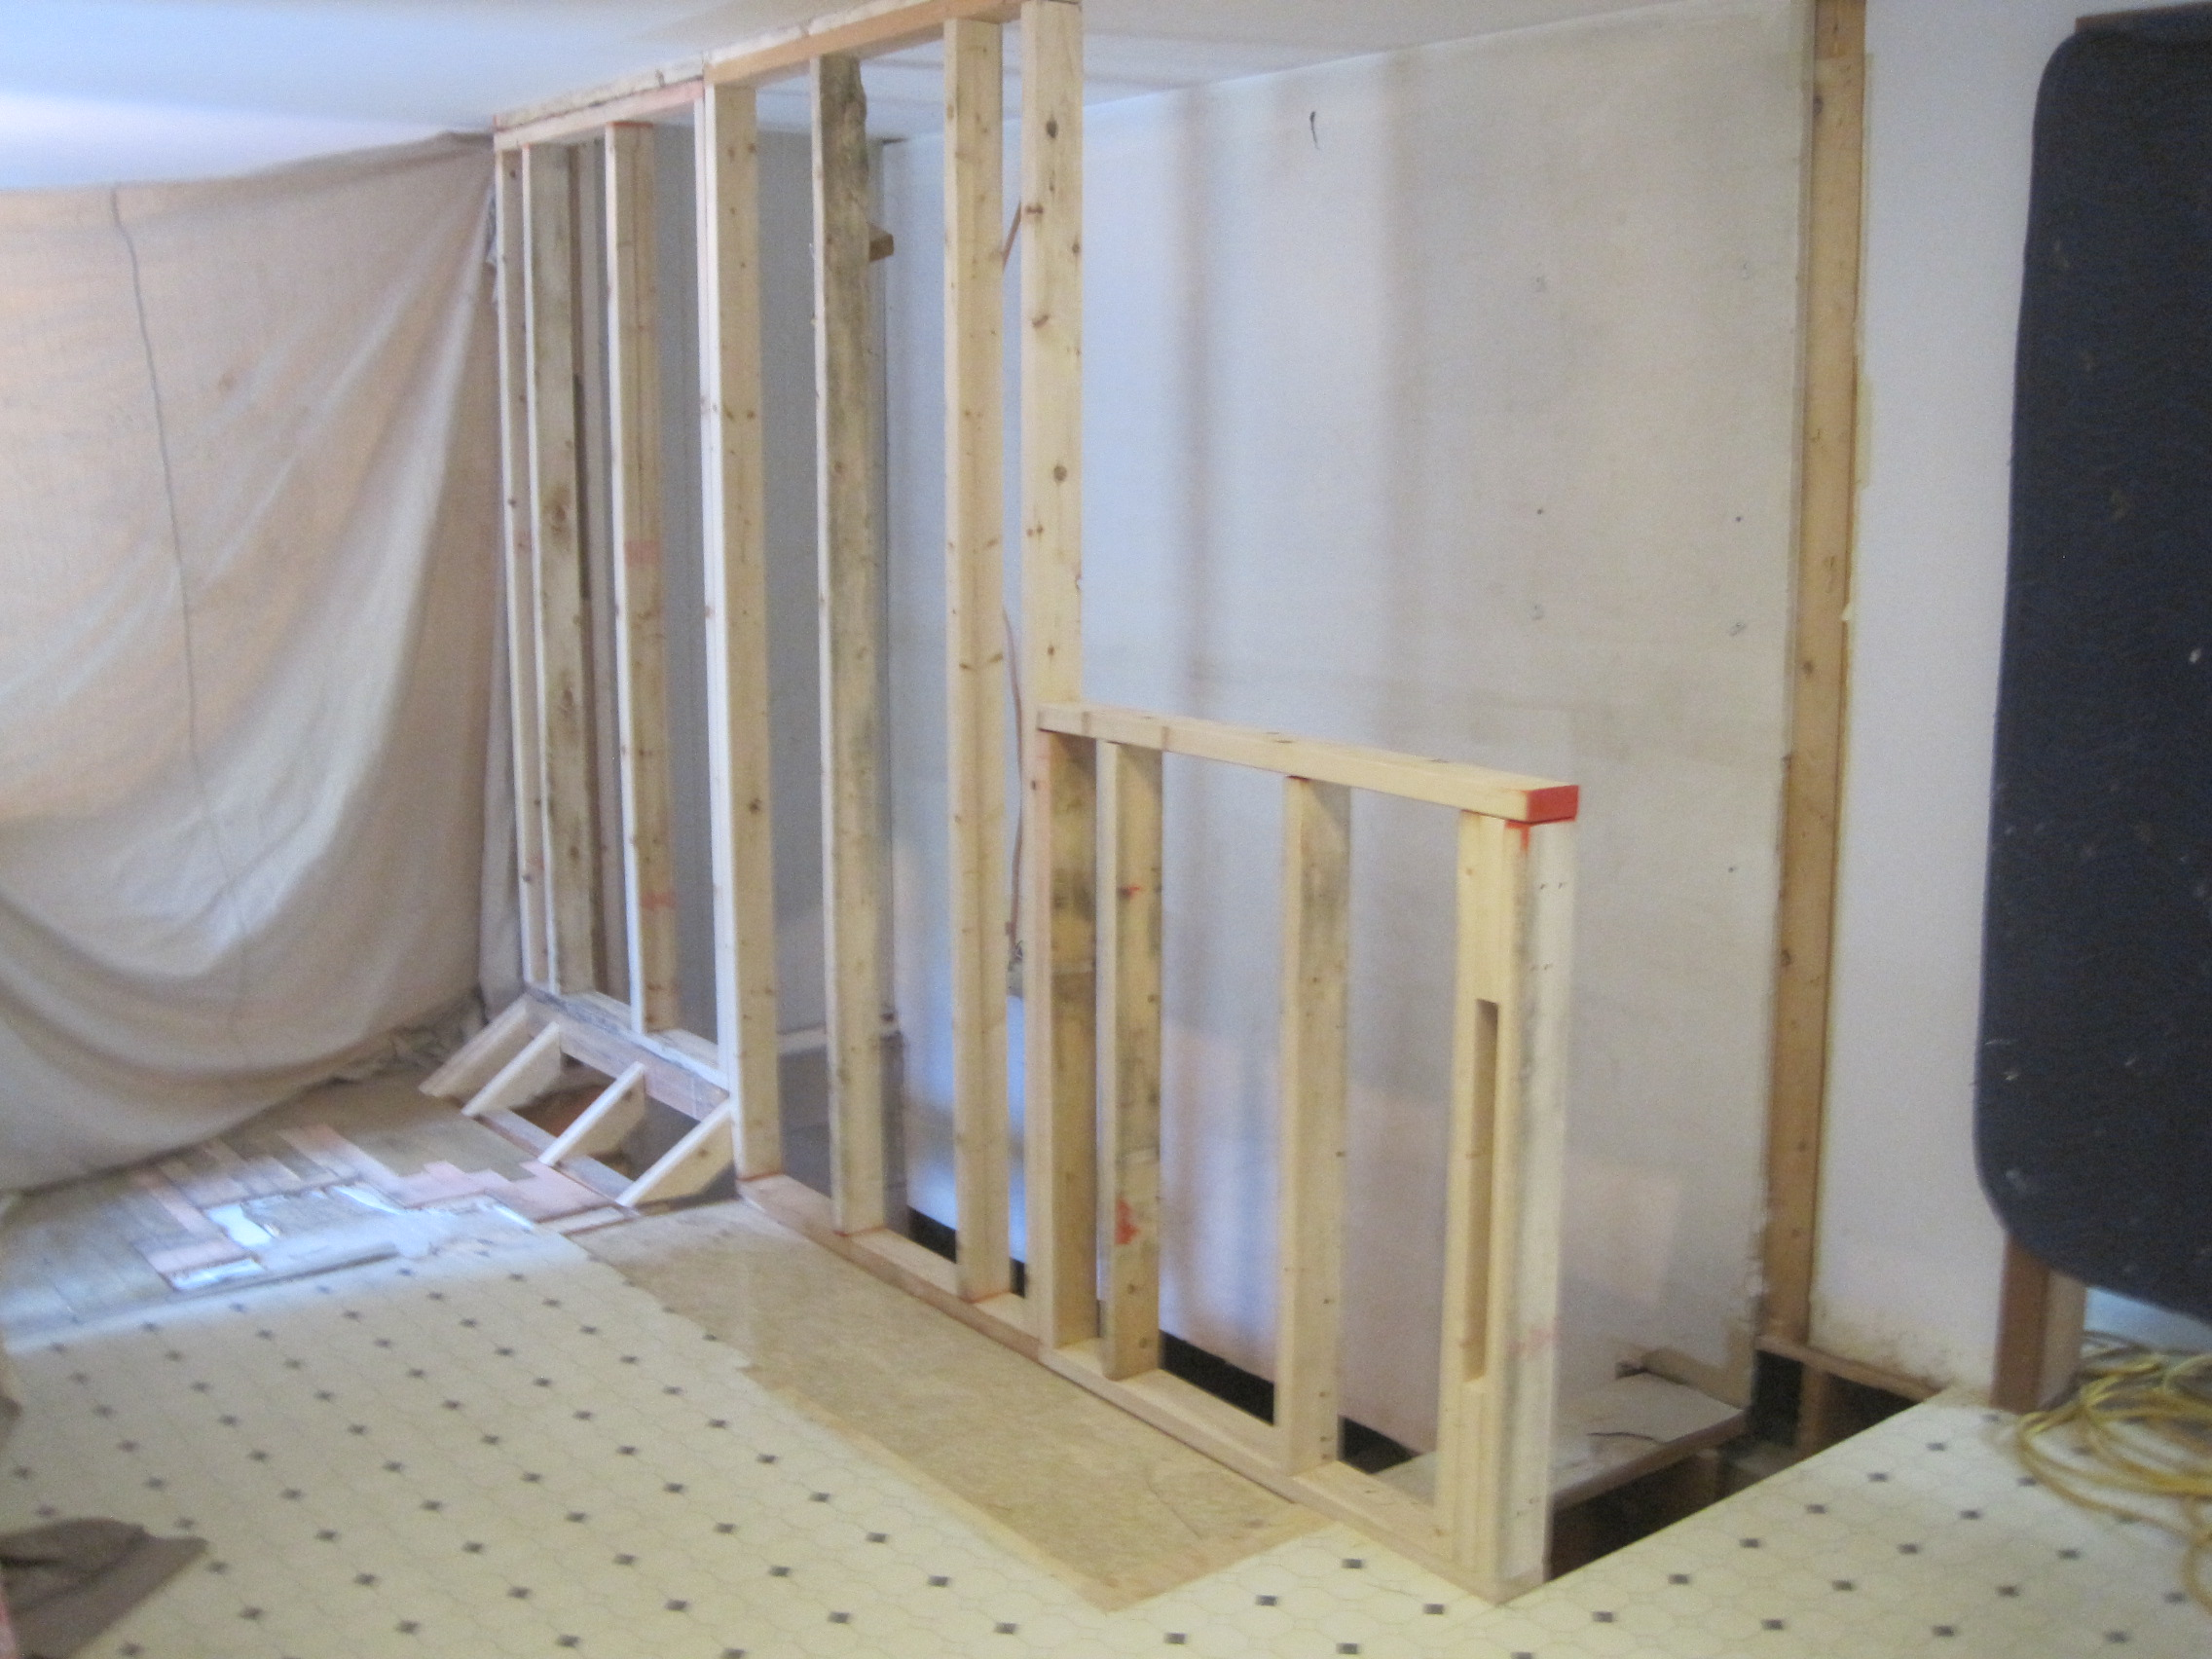 Framing Bat Stair First Floor Walls Home Improvement Blog